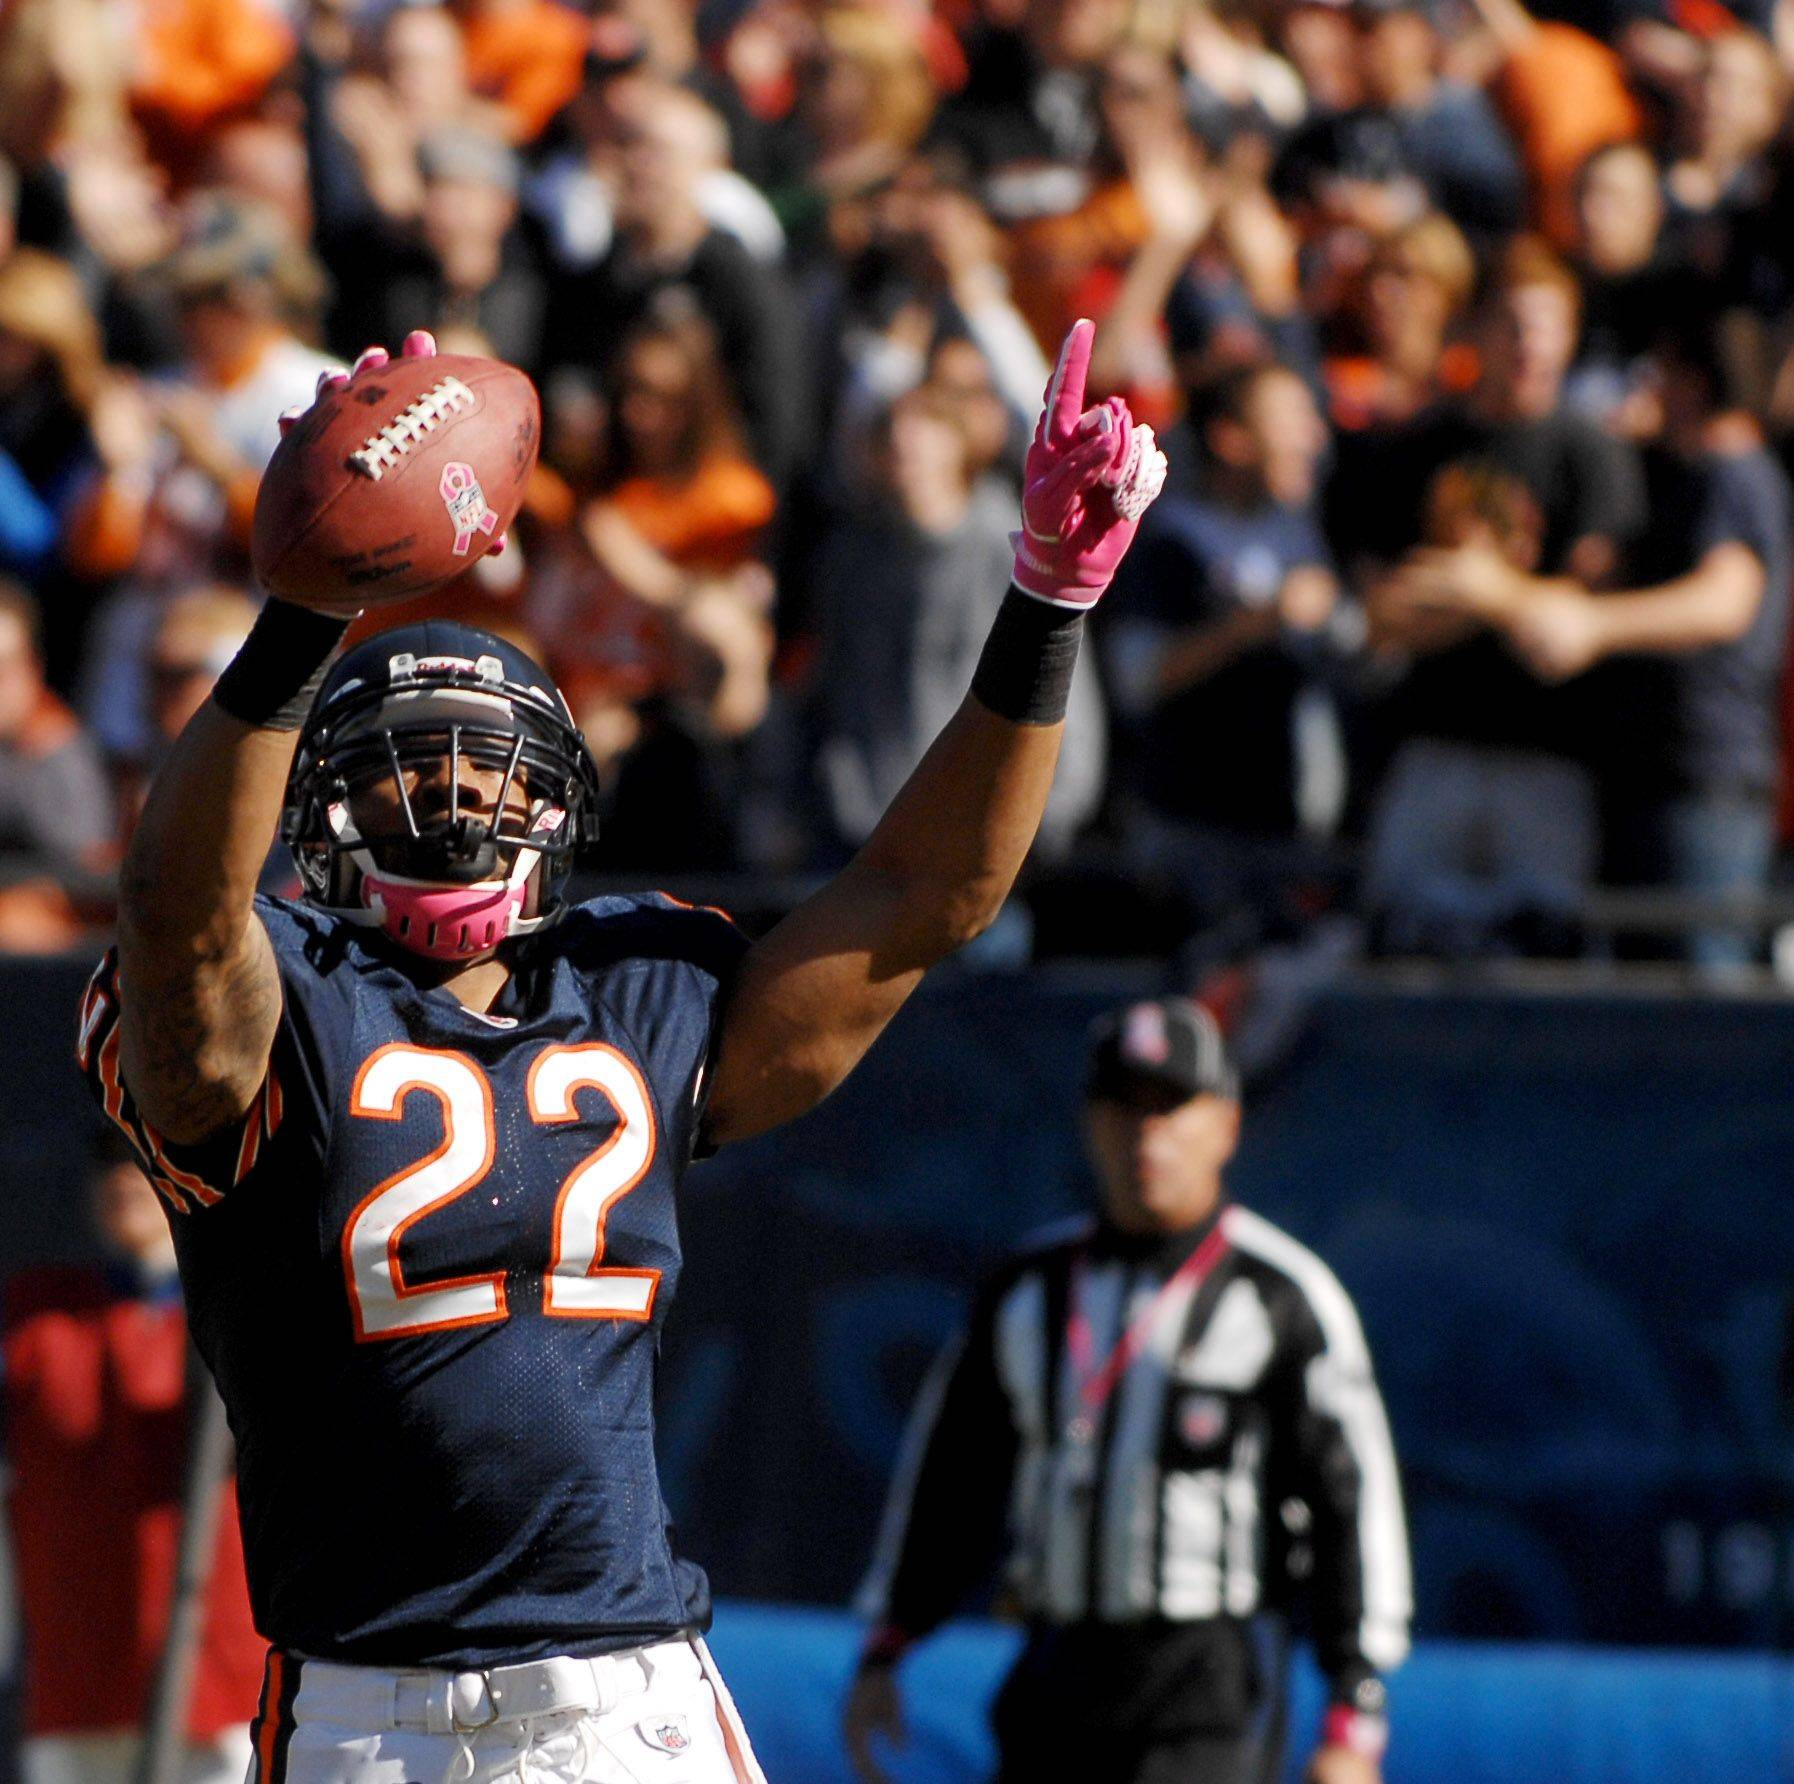 Chicago Bears running back Matt Forte celebrates his first quarter touchdown run.